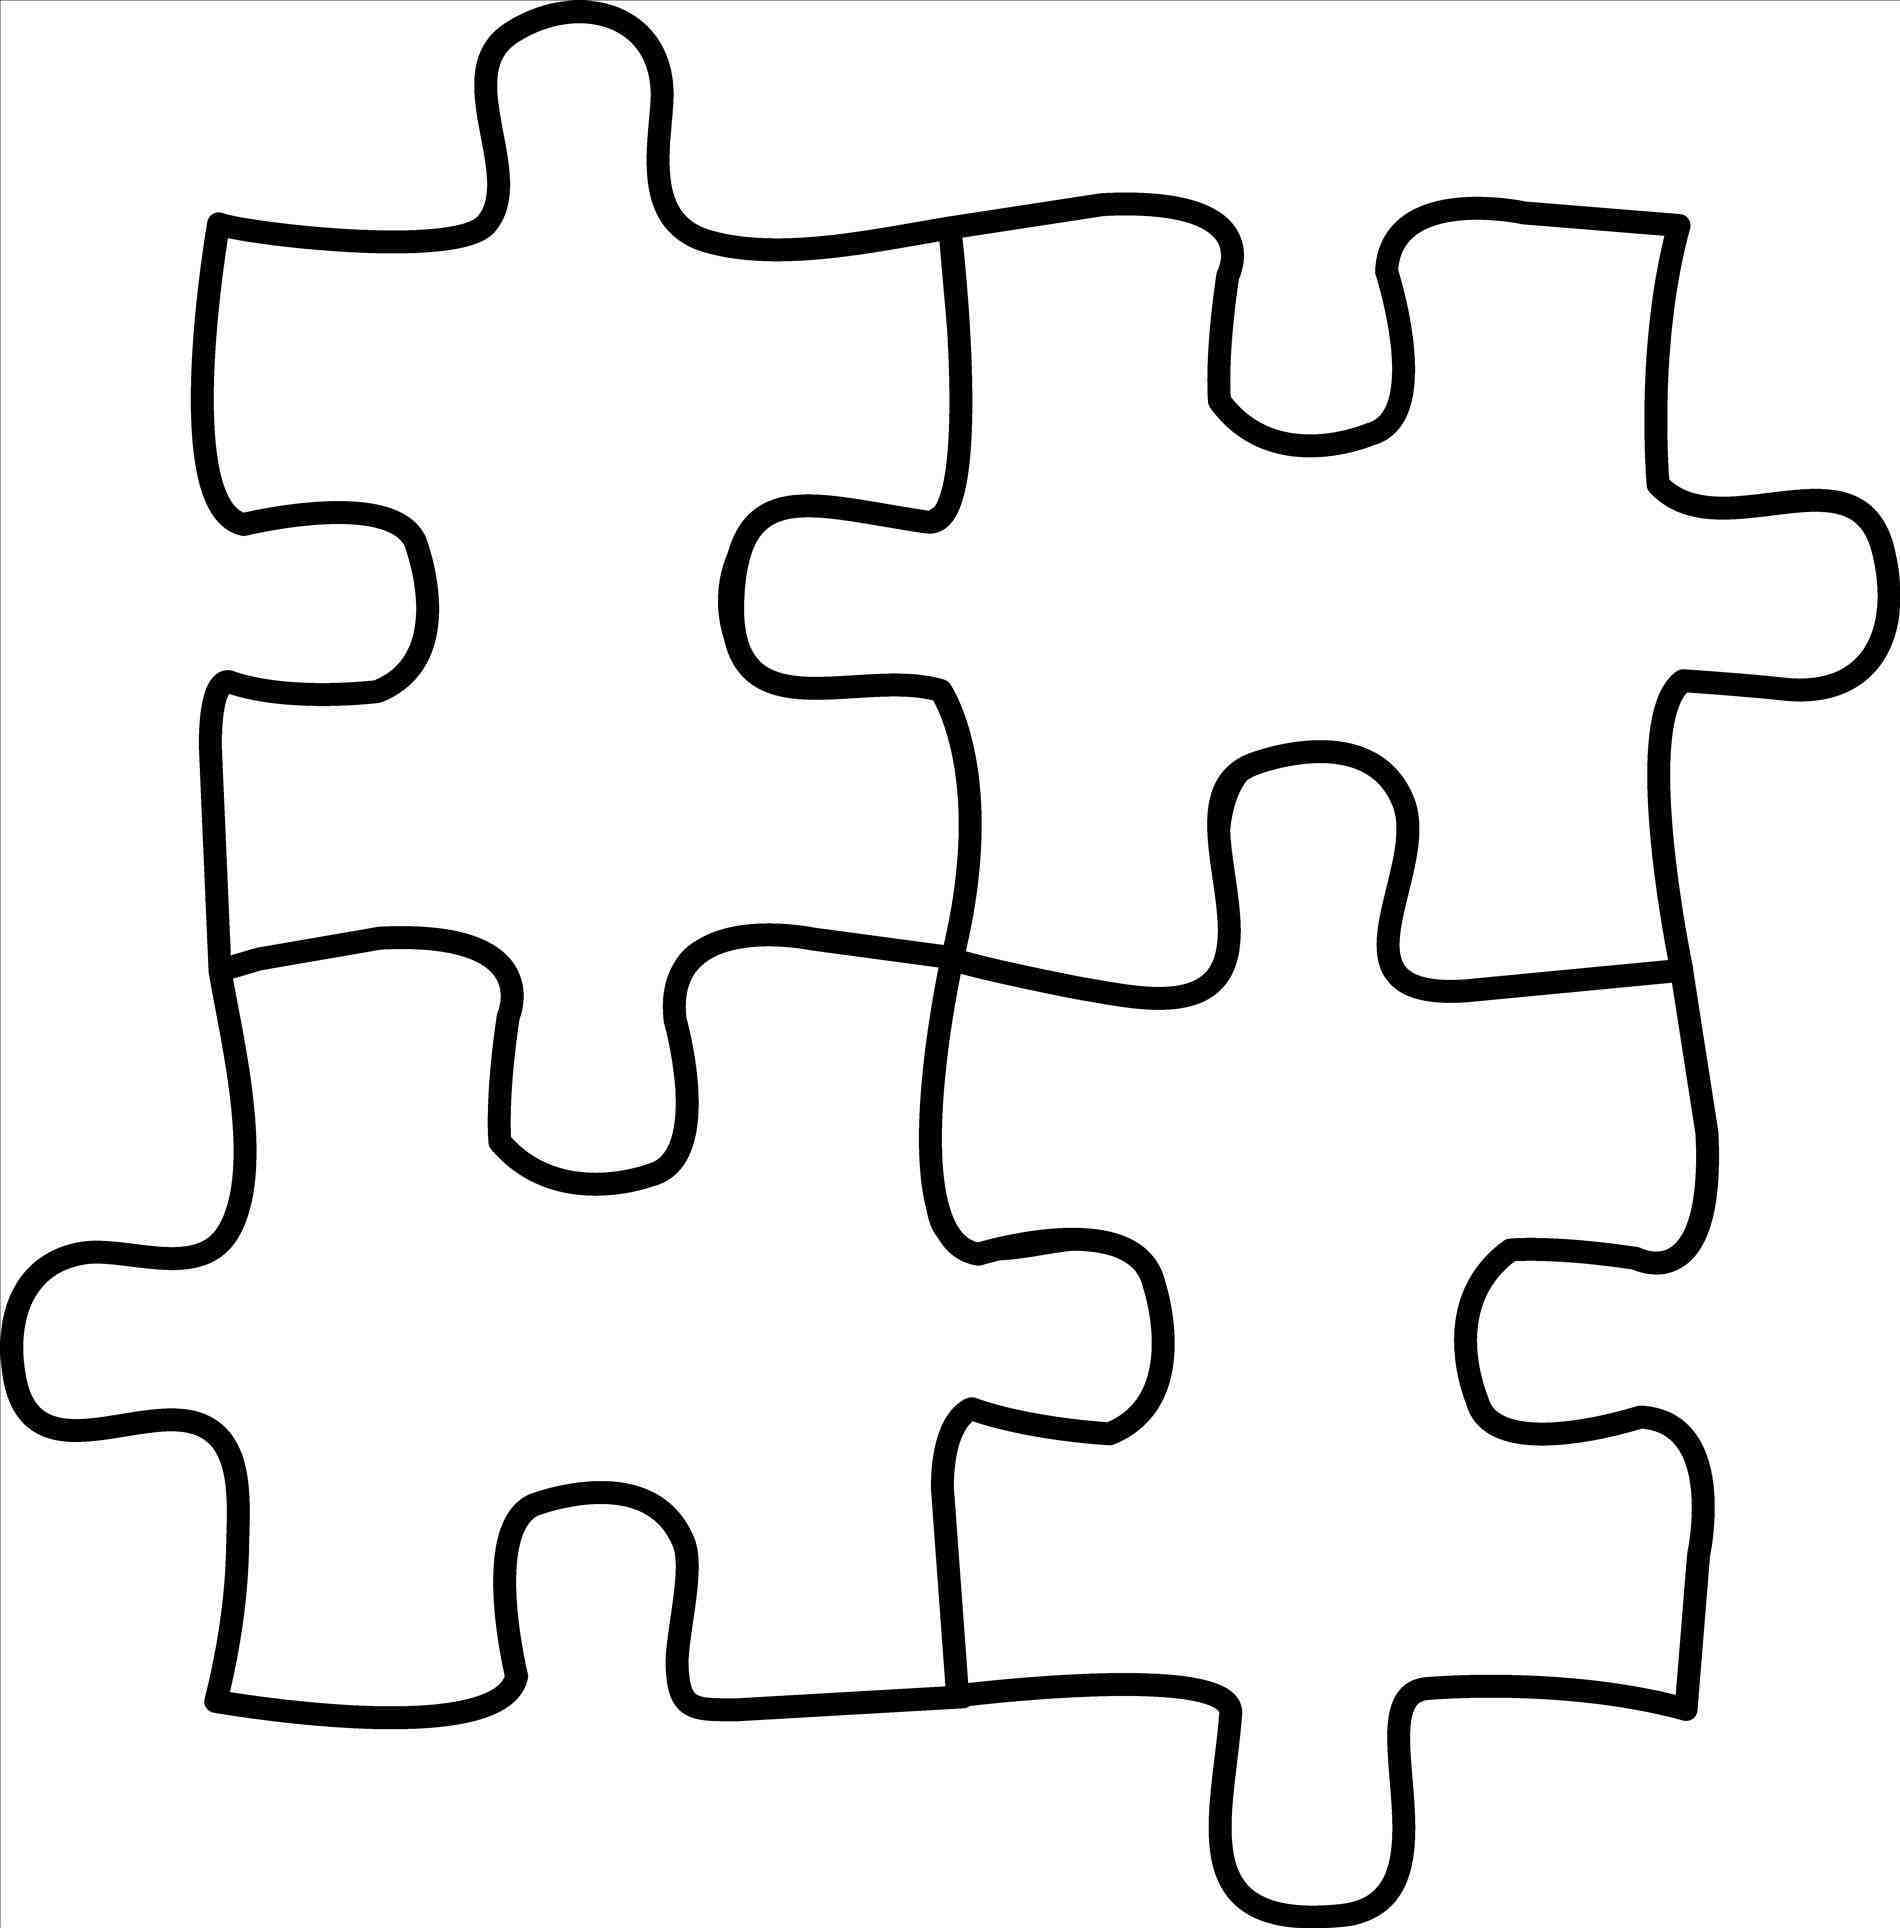 Puzzle clipart black svg freeuse stock Puzzle clipart black and white 1 » Clipart Station svg freeuse stock